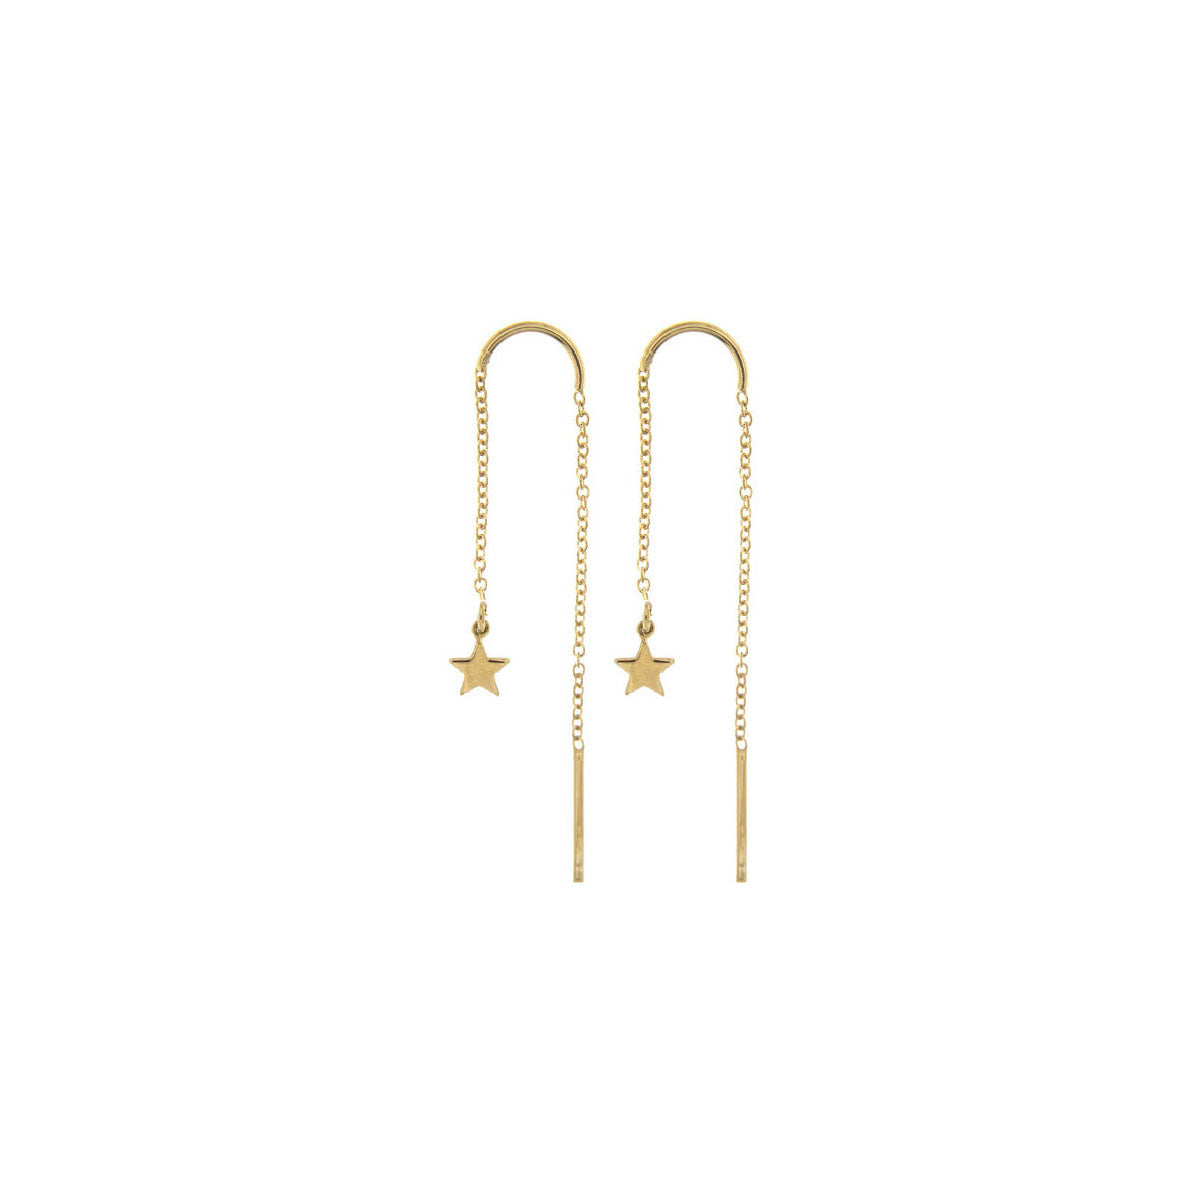 Earrings - Earring chain rounded subject - star - 2 | Rue des Mille